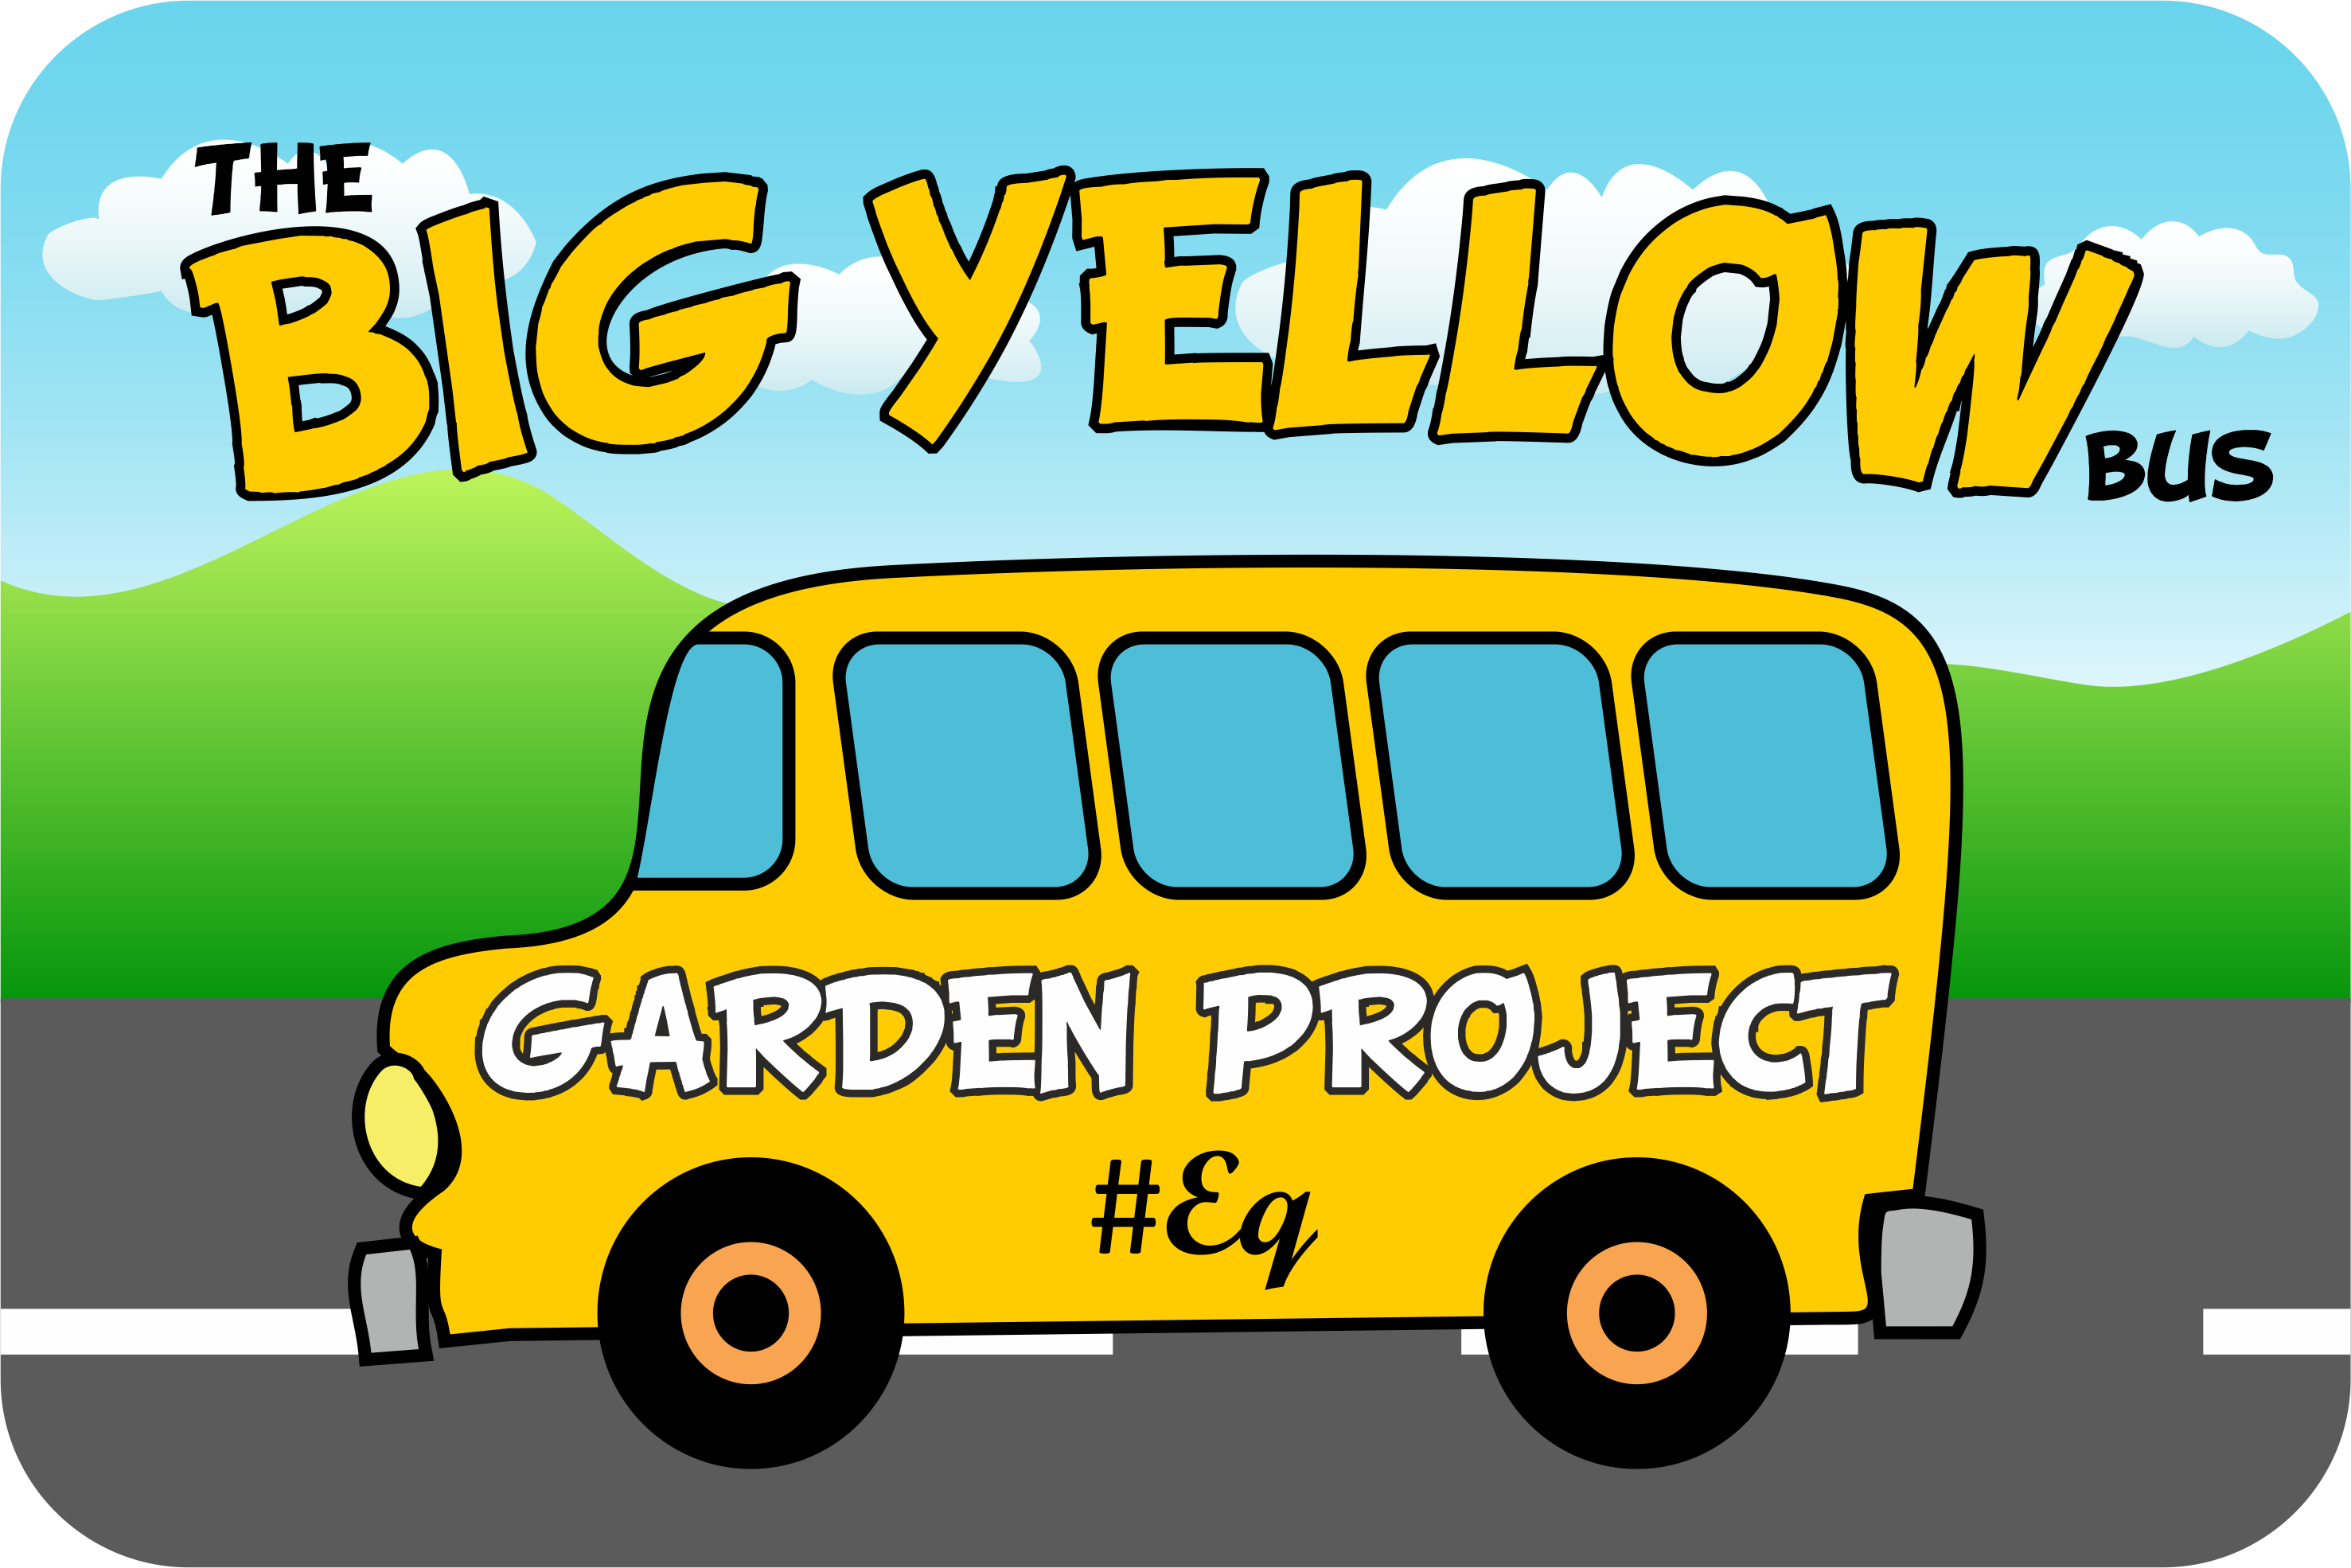 Sturminster Newton-The Big Yellow Bus Project